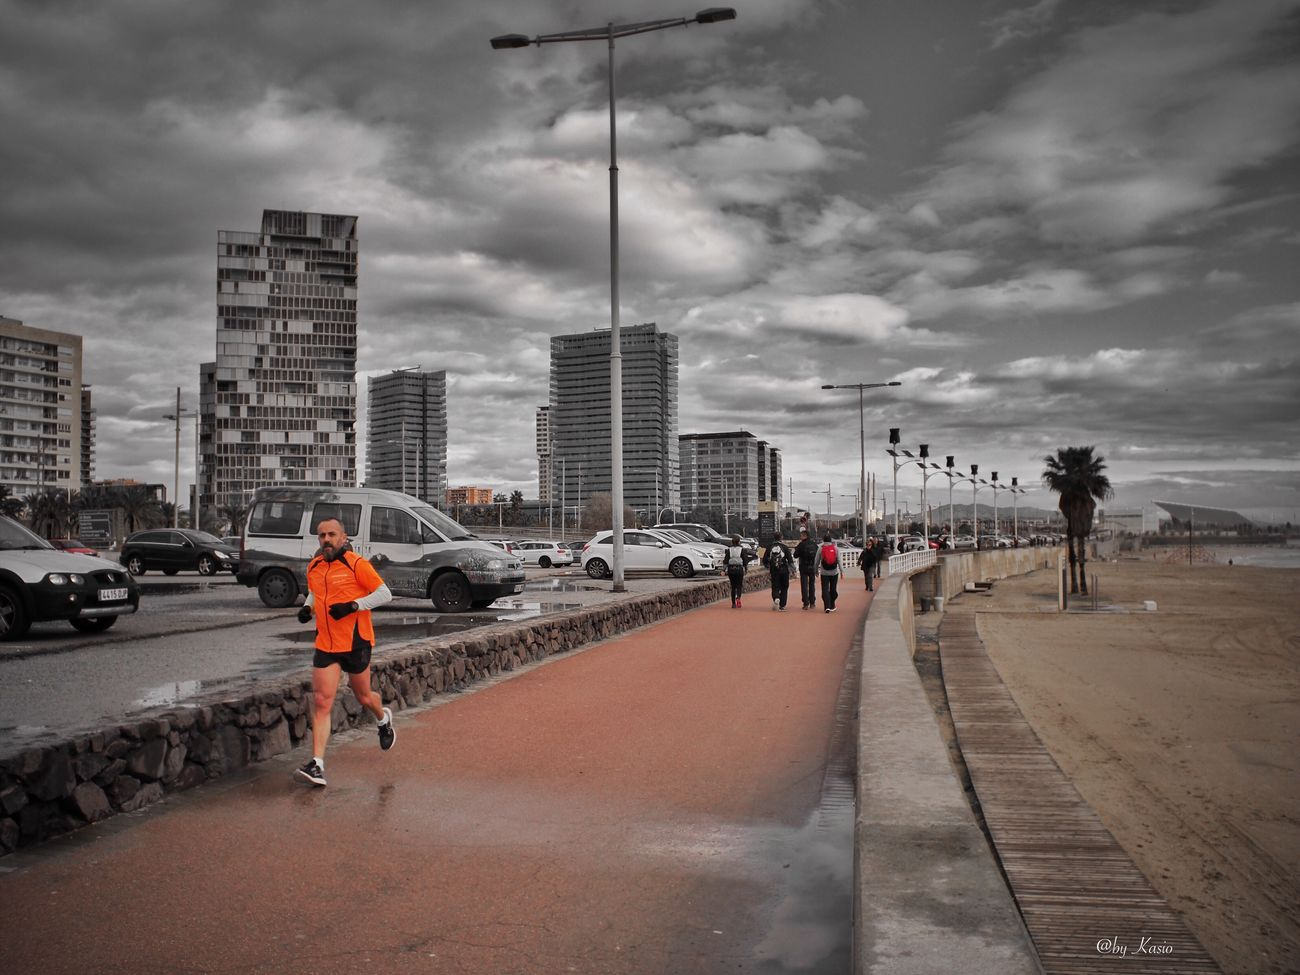 Y de pronto todo el mundo echó a correr, como queriendo escapar de su propio destino. Architecture City Cloud - Sky Men Running Runner EyeEm Best Shots Eye4photography  Capture The Moment Olympus Om-d E-m10 Olympus Sport City Life City Street Streetphotography Street Photography EyeEm Best Edits